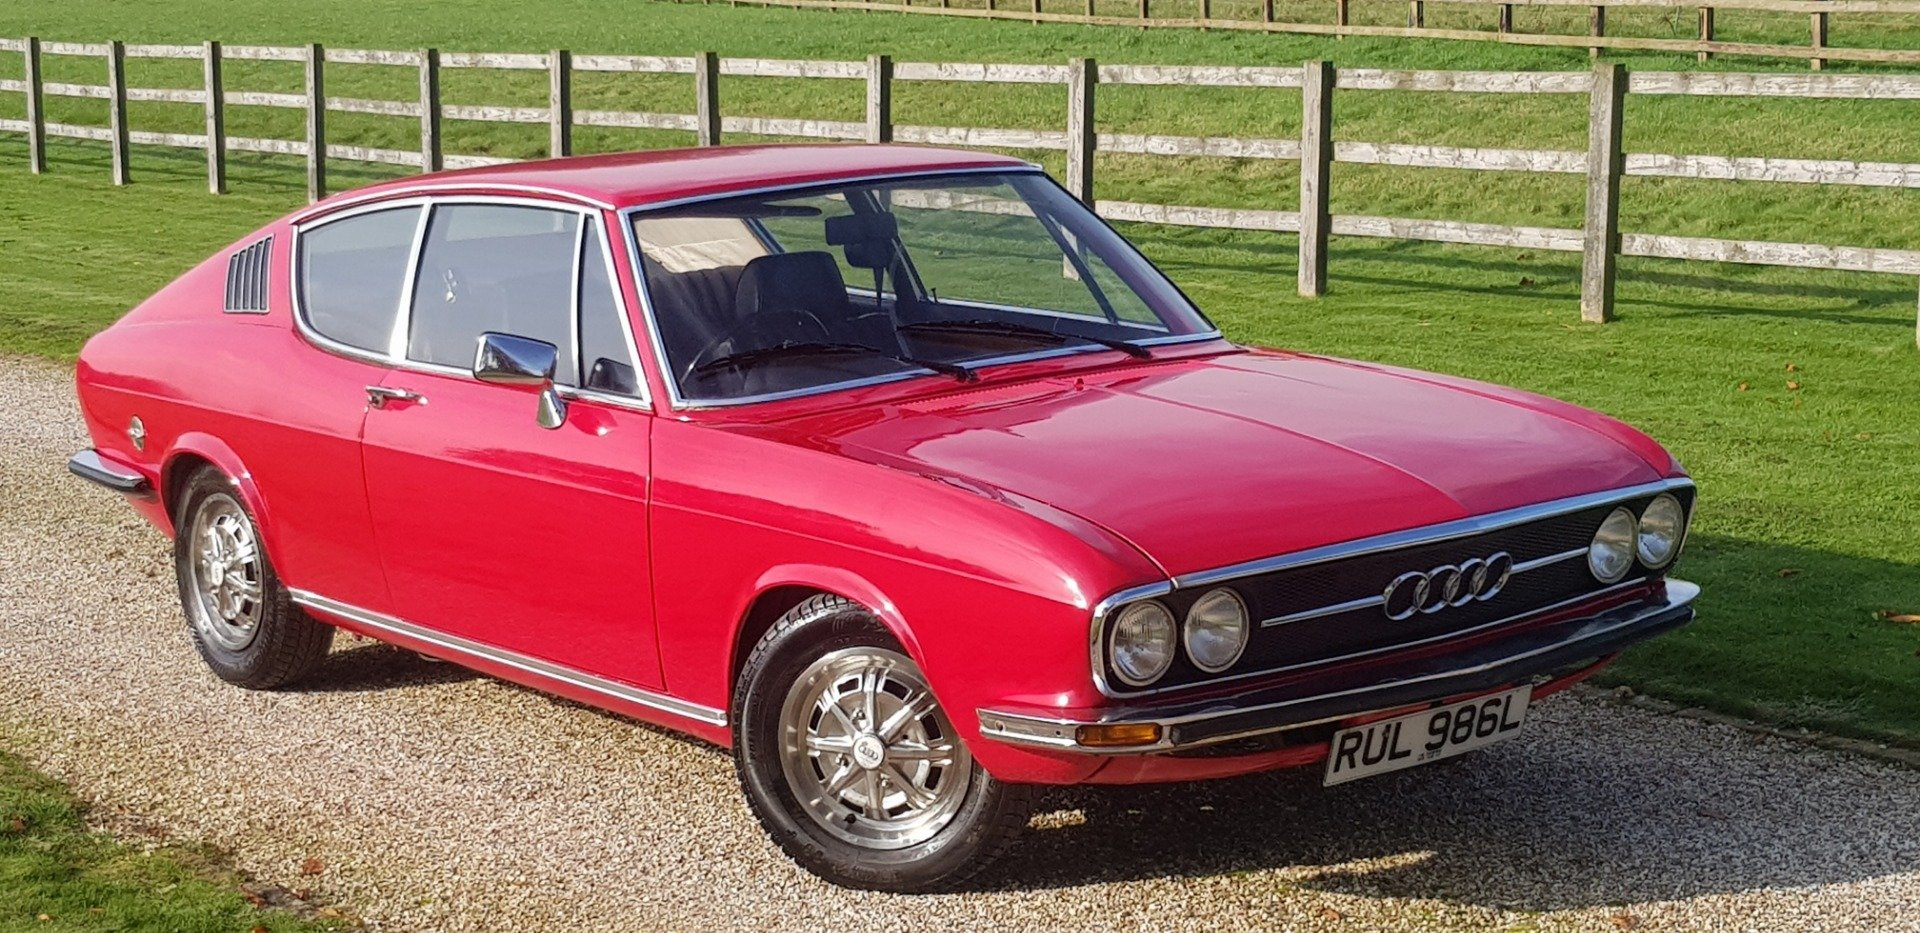 1973 UK RHD  COUPE 100S  VERY  RARE  VEHICLE   For Sale (picture 3 of 6)